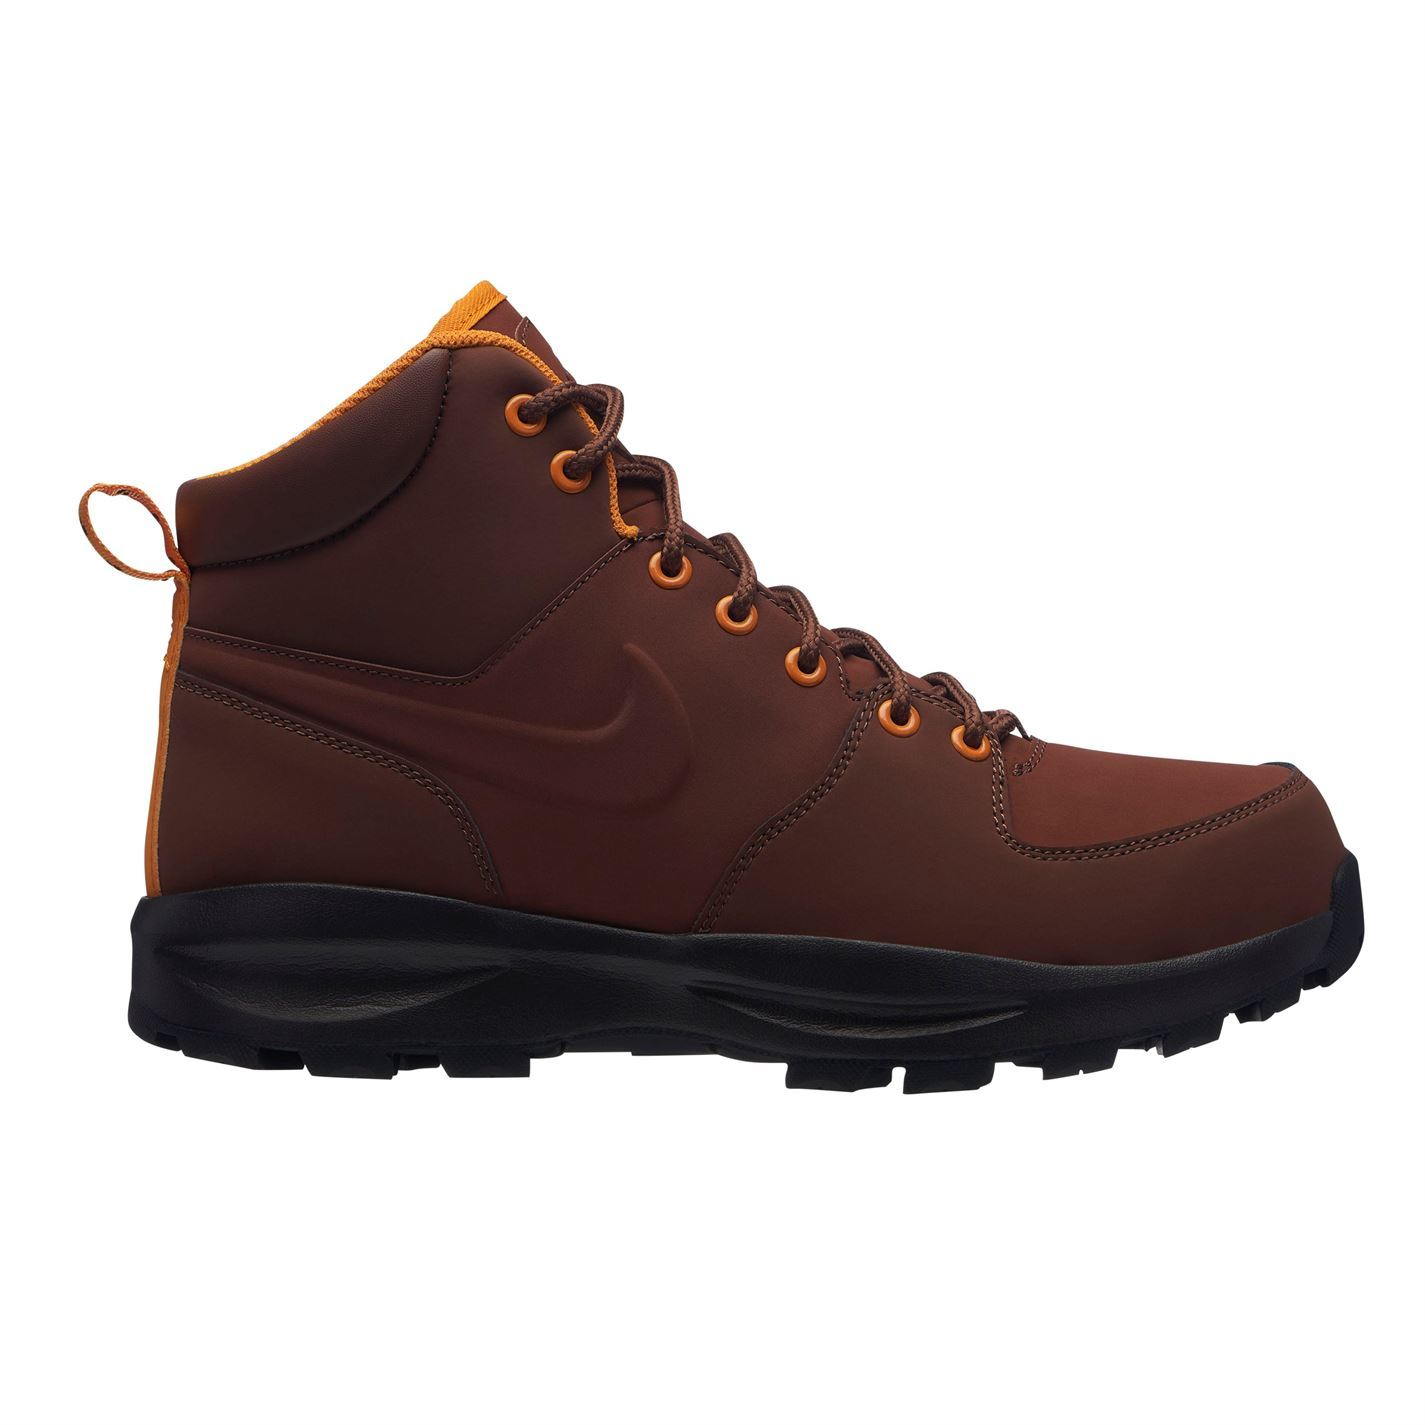 652811536f06 Nike-Manoa-Leather-Boots-Mens-Hiking-Footwear-Shoes thumbnail